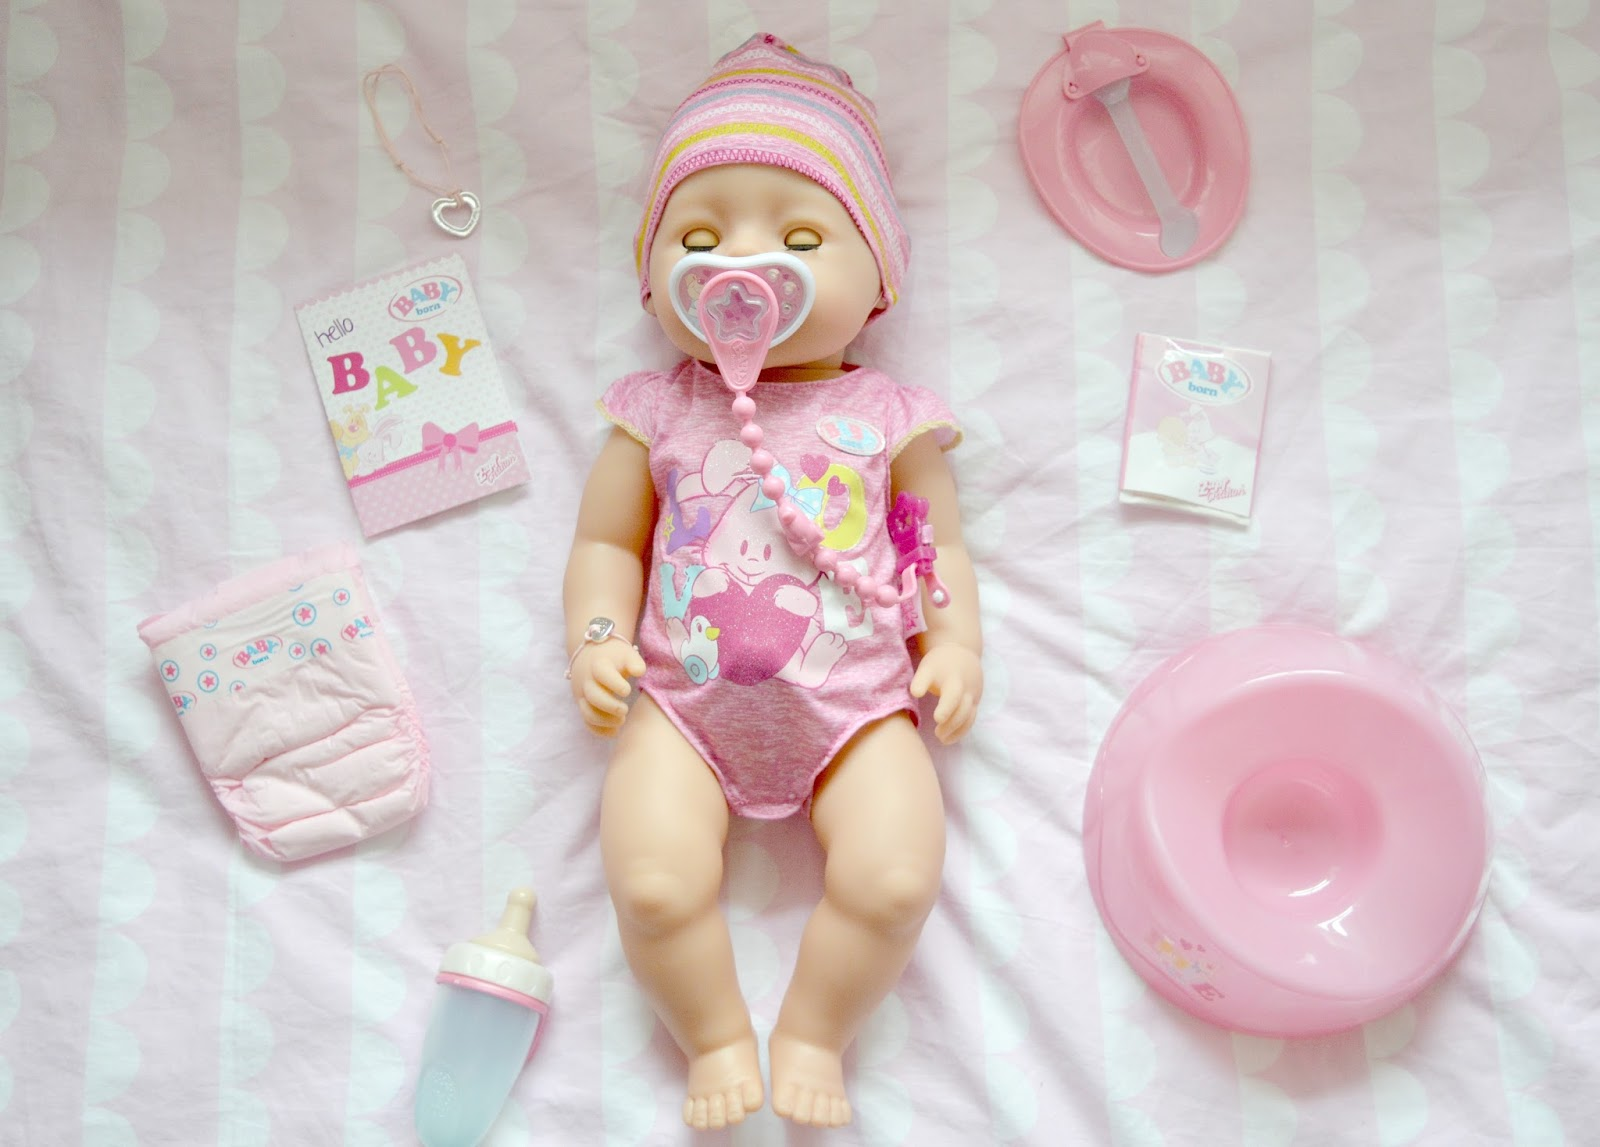 Baby Born Interactive Doll Review Sophie Ella And Me